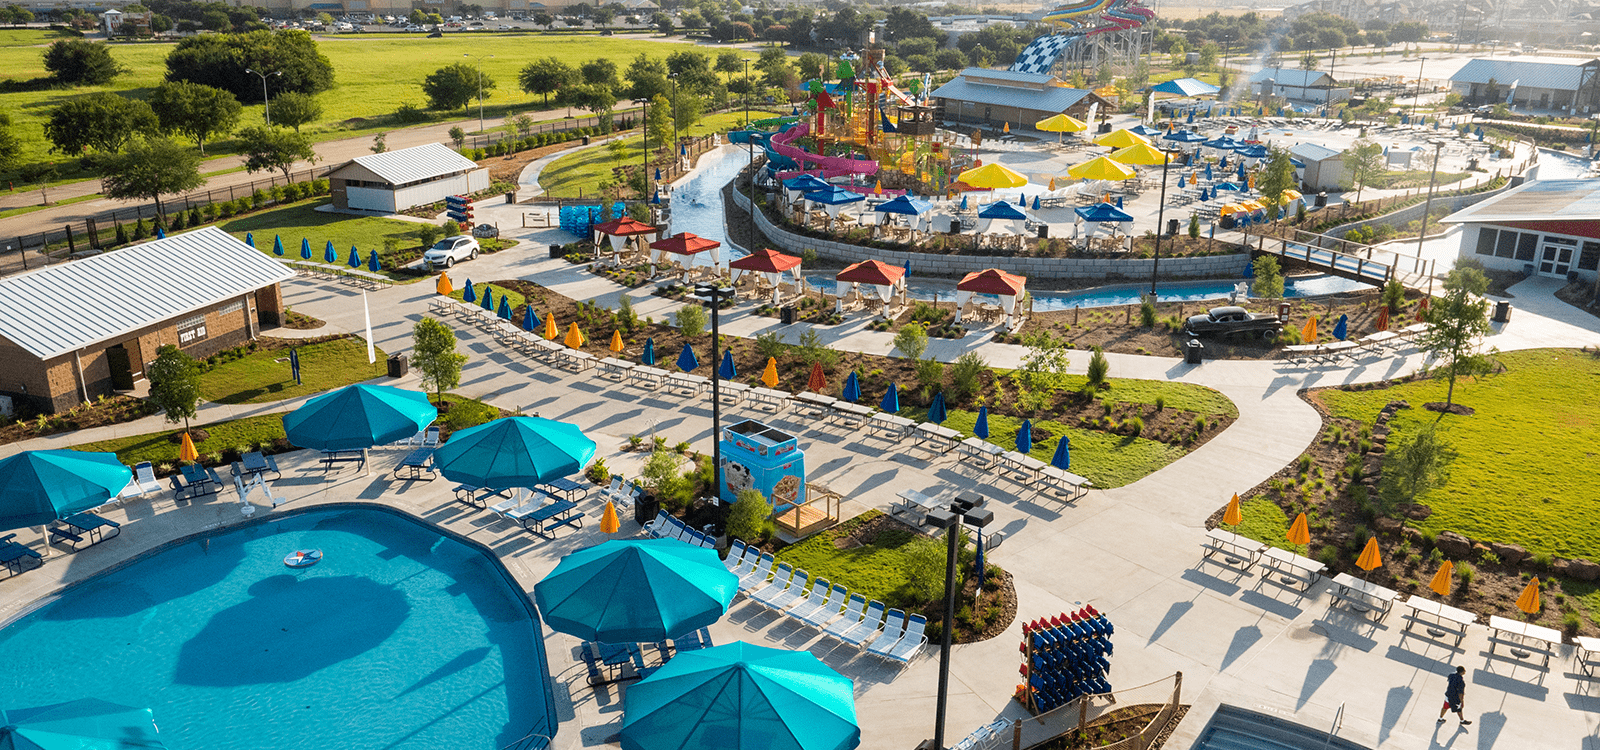 Image result for Typhoon Texas Waterpark houston